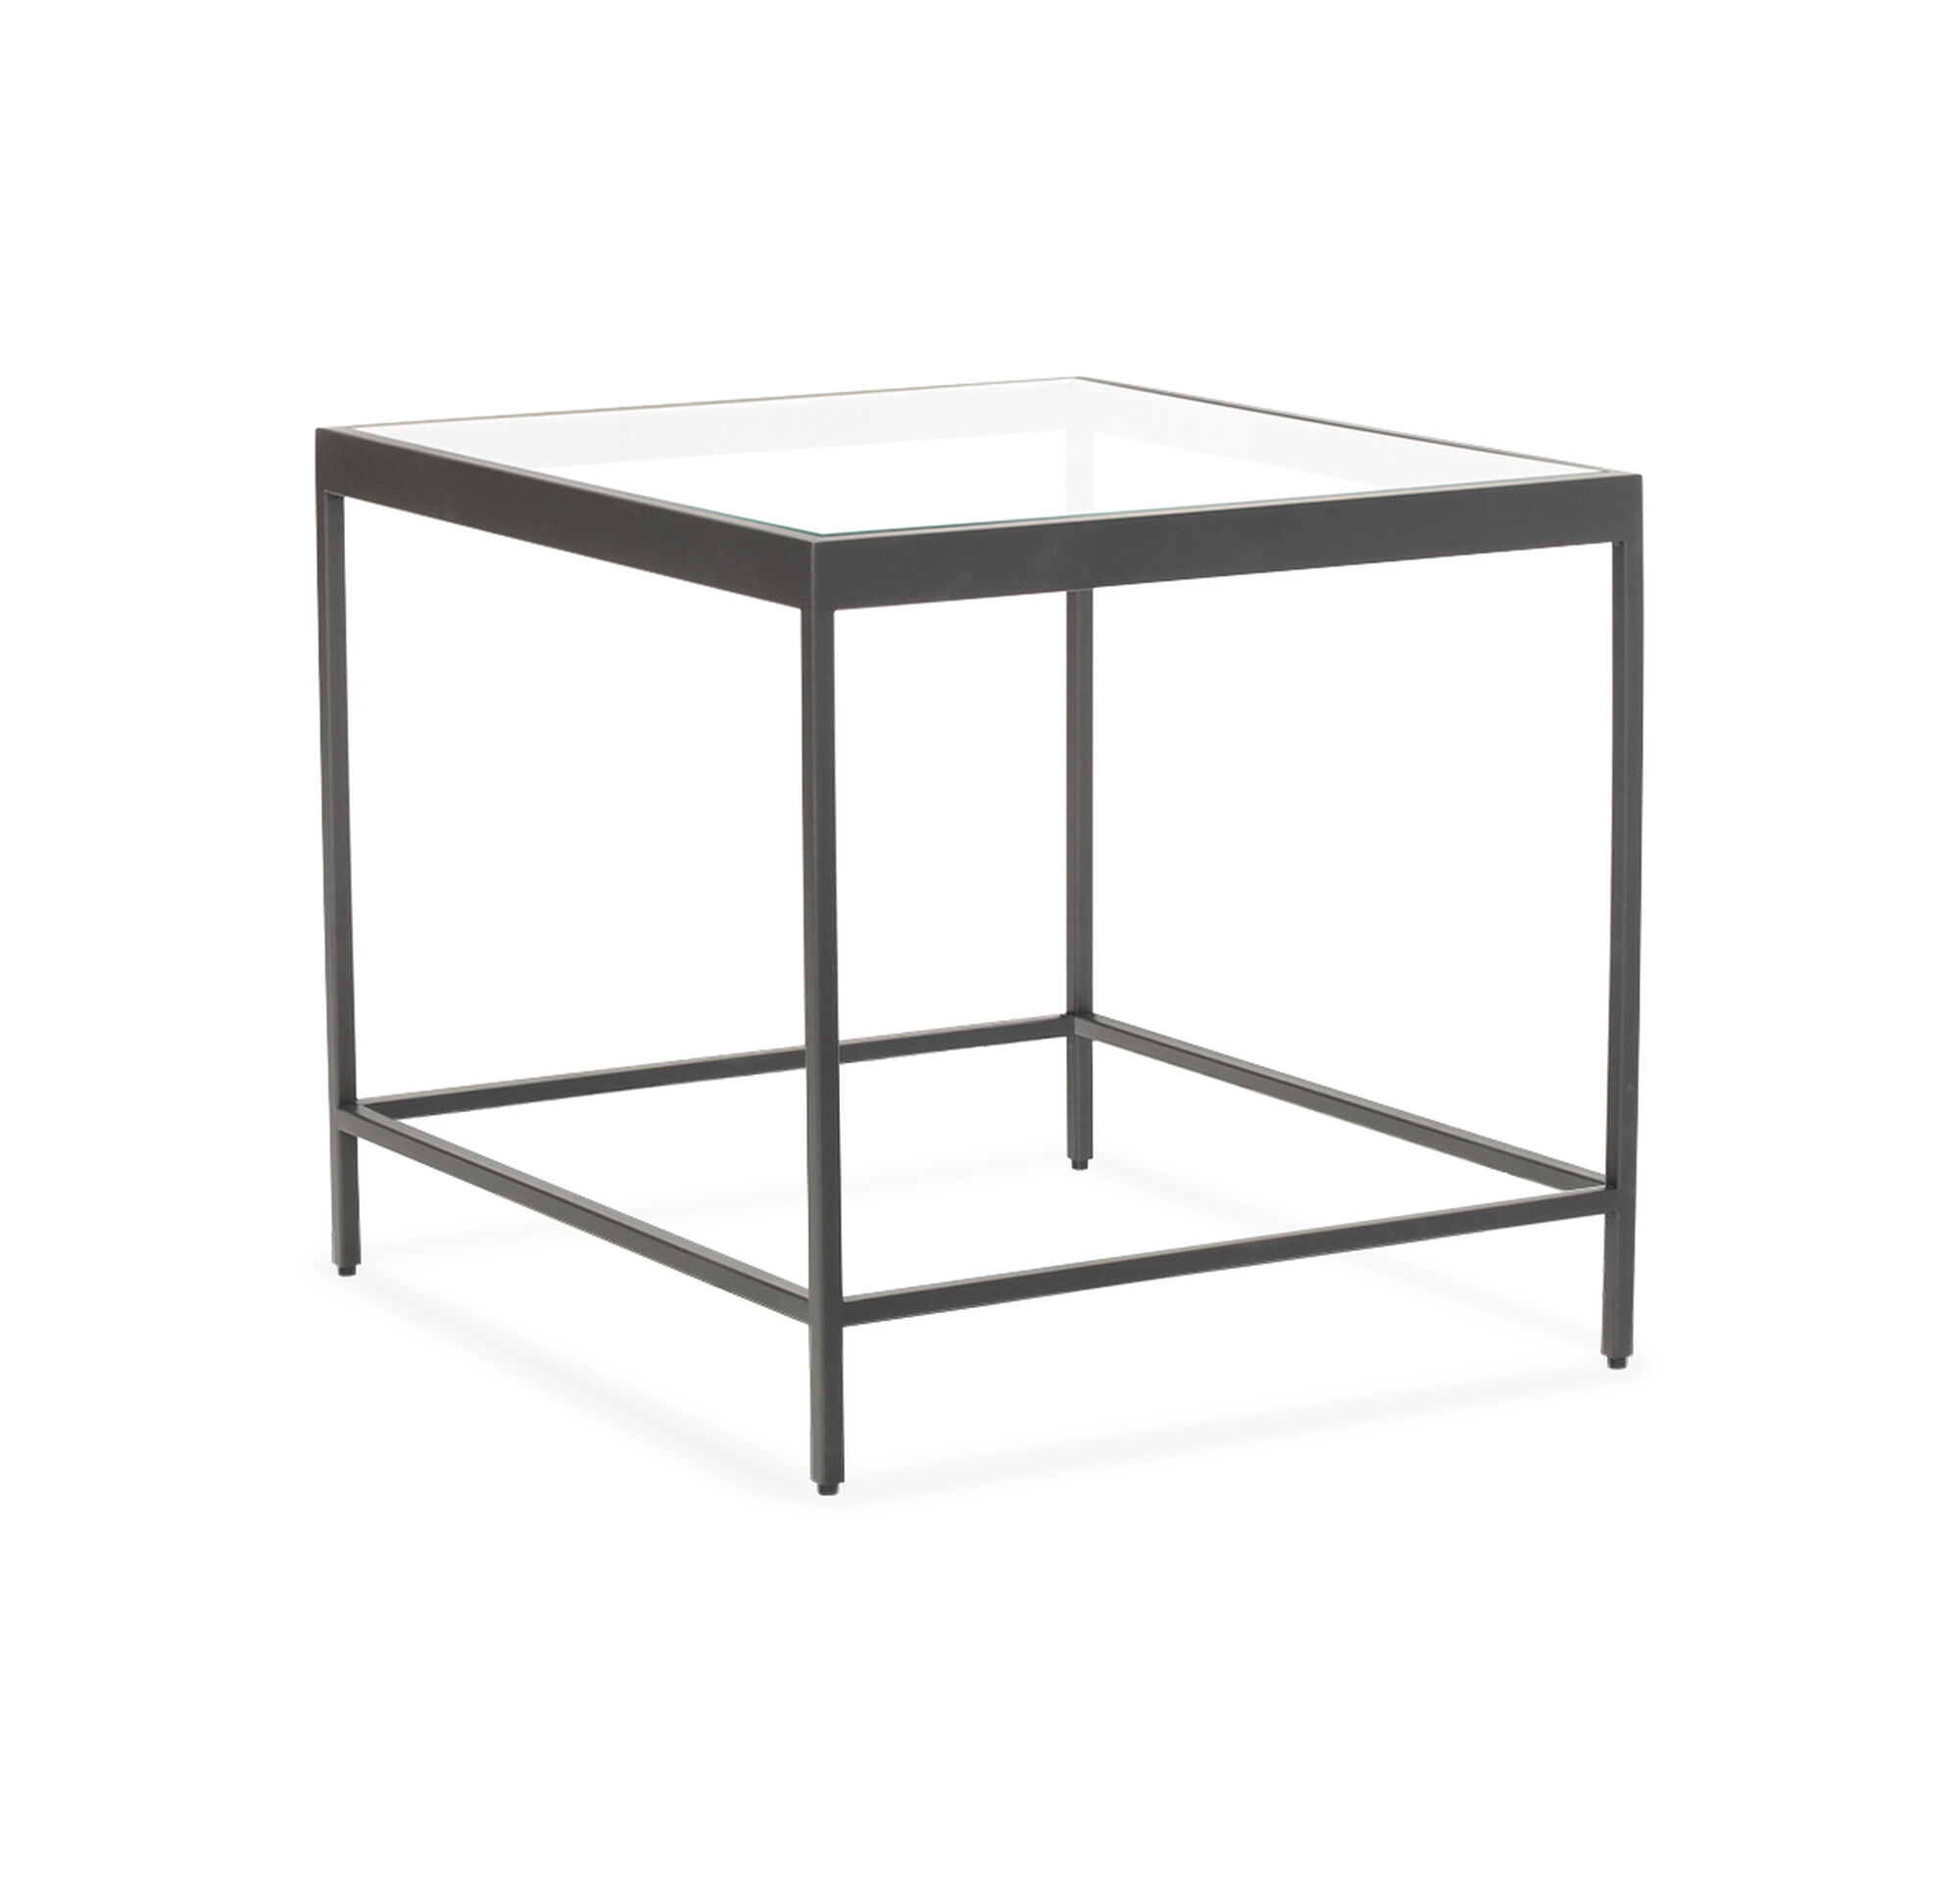 VIENNA SIDE TABLE PEWTER - Pewter glass coffee table